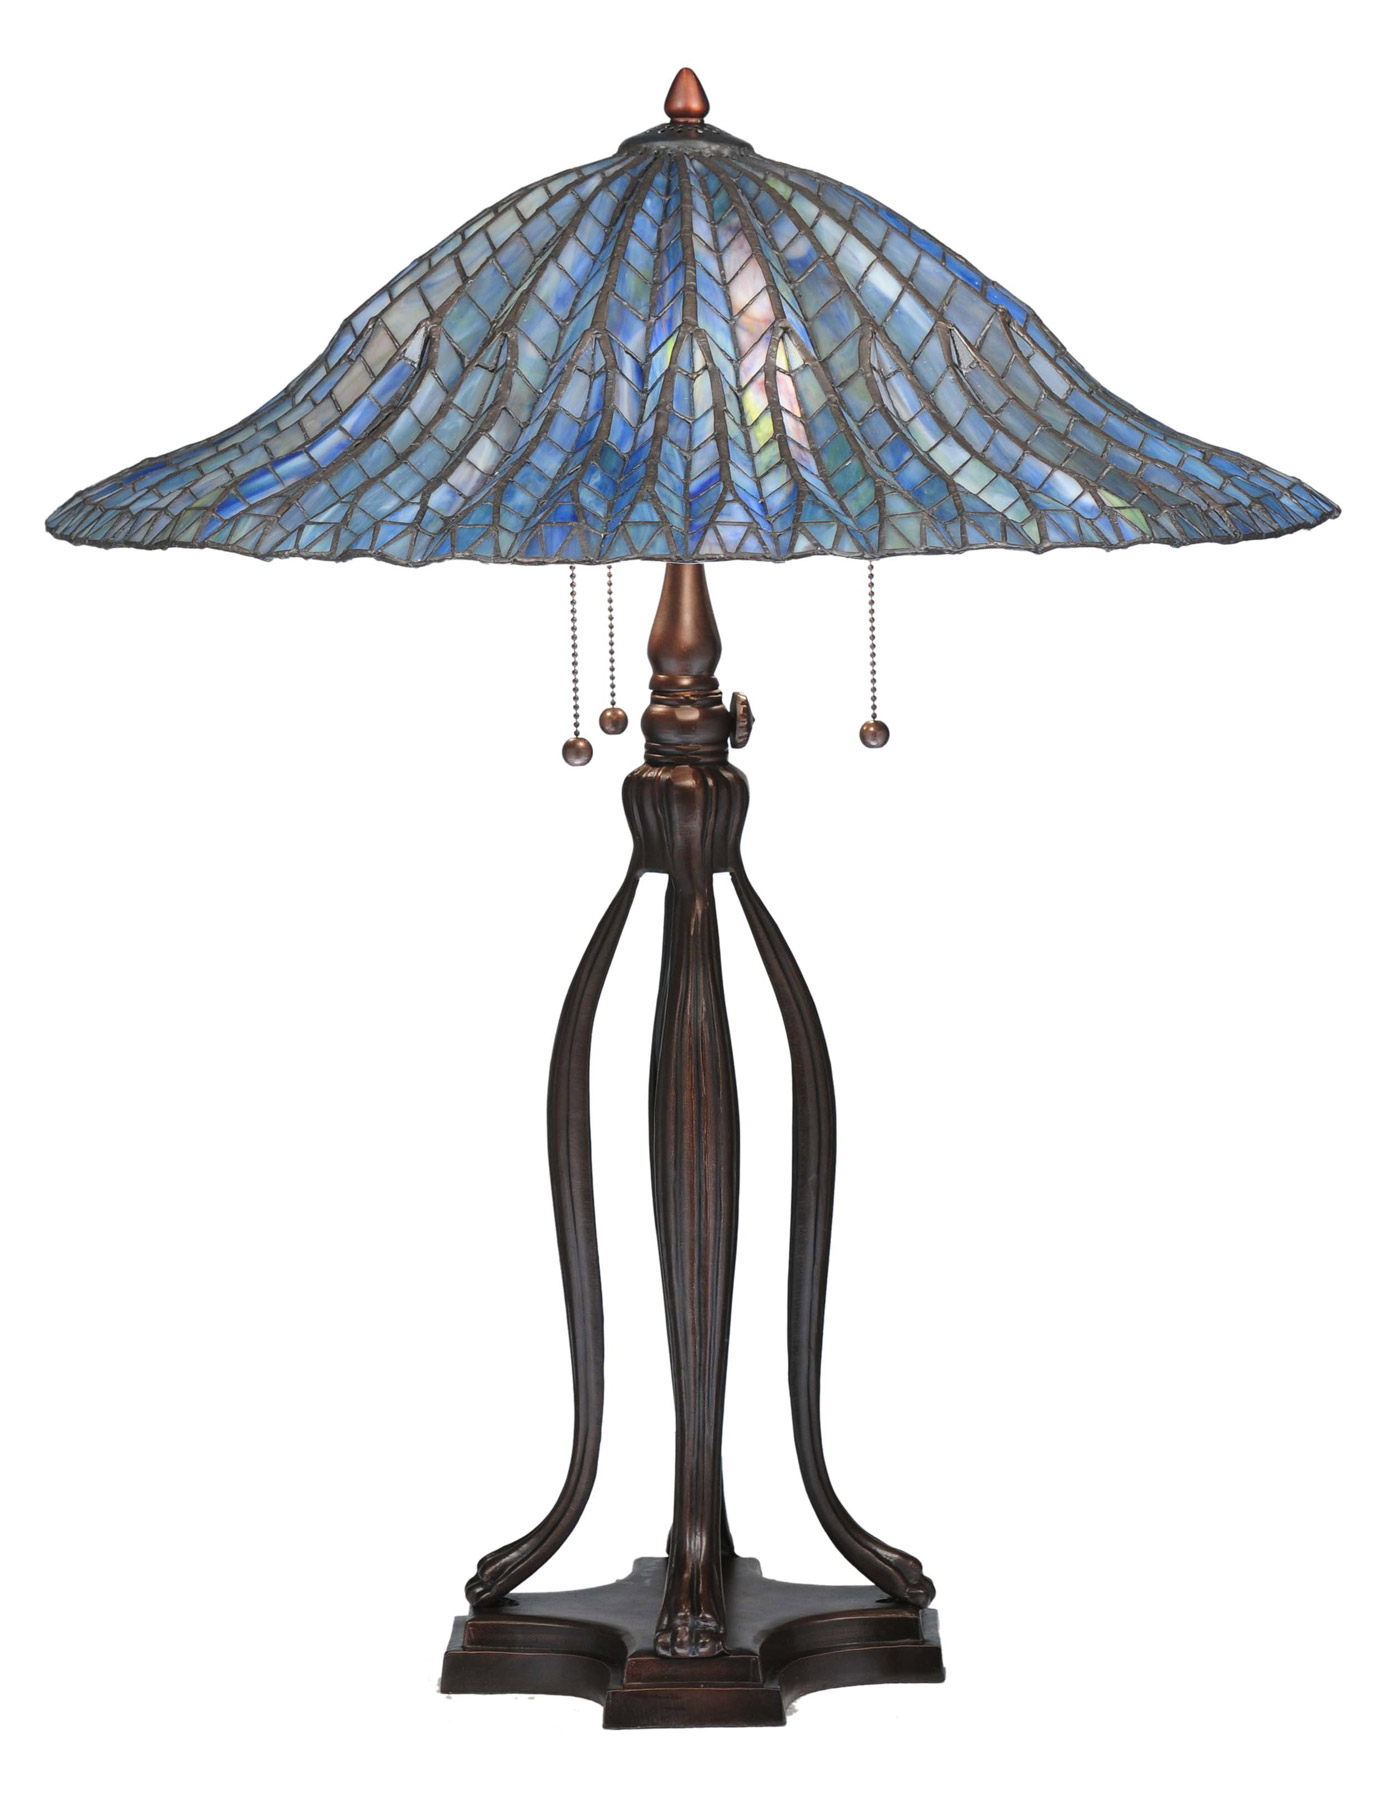 home lamps table lamps standard table lamps meyda 29385. Black Bedroom Furniture Sets. Home Design Ideas